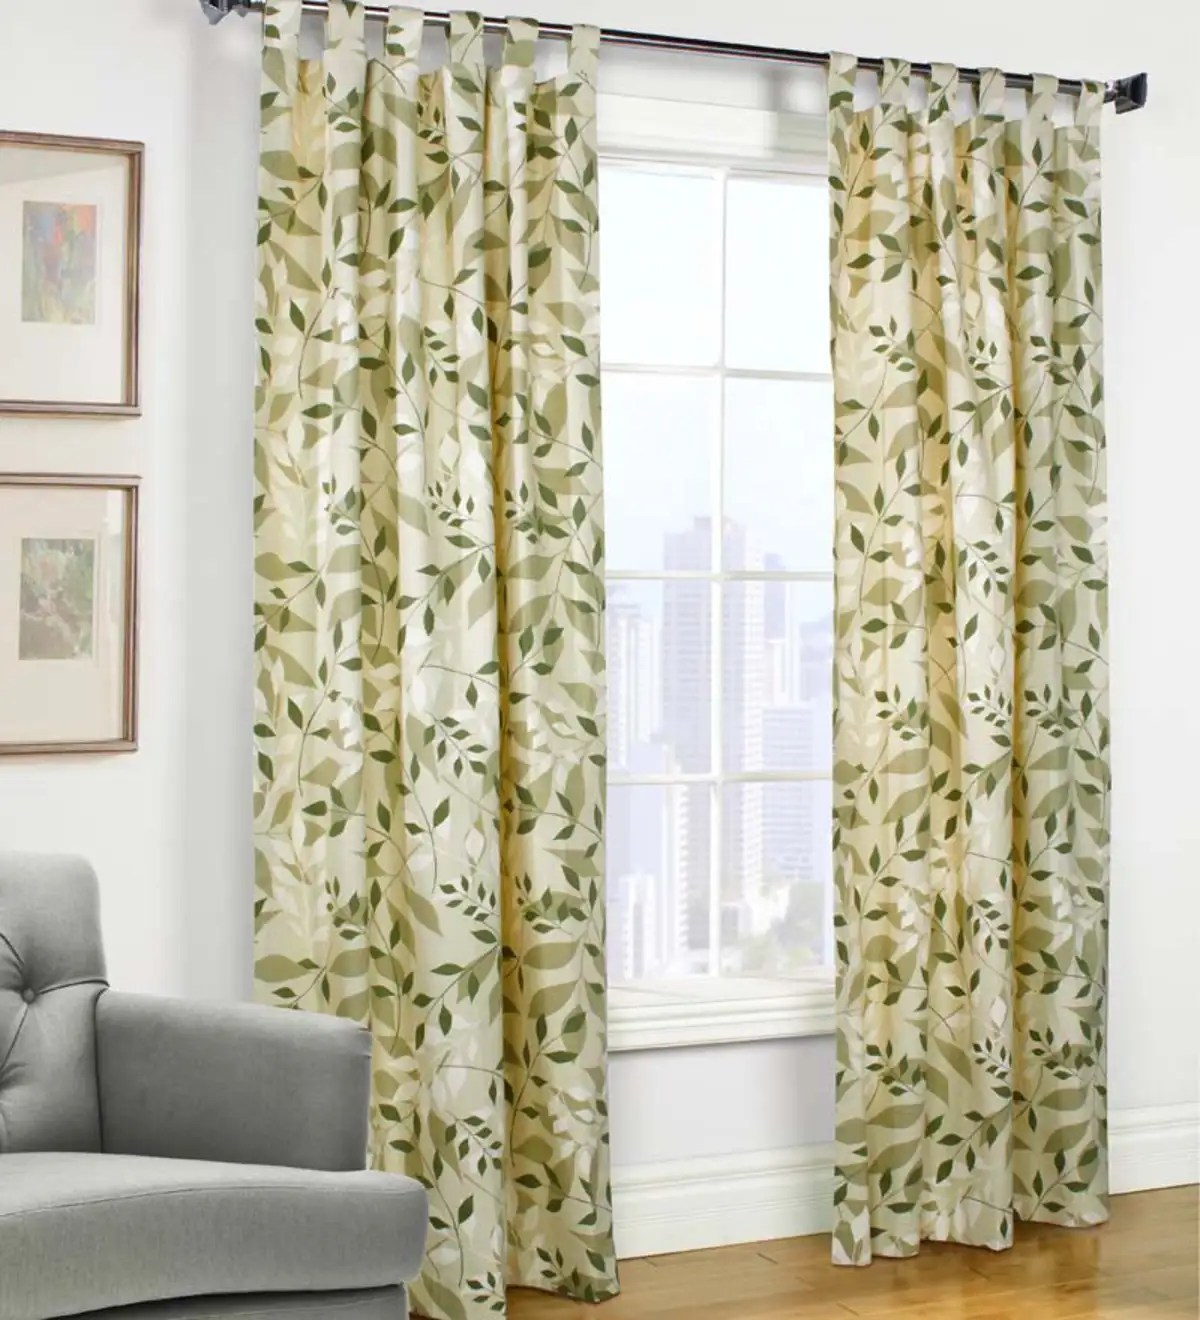 Leaves Tab Top Valance 40 W X 15 L